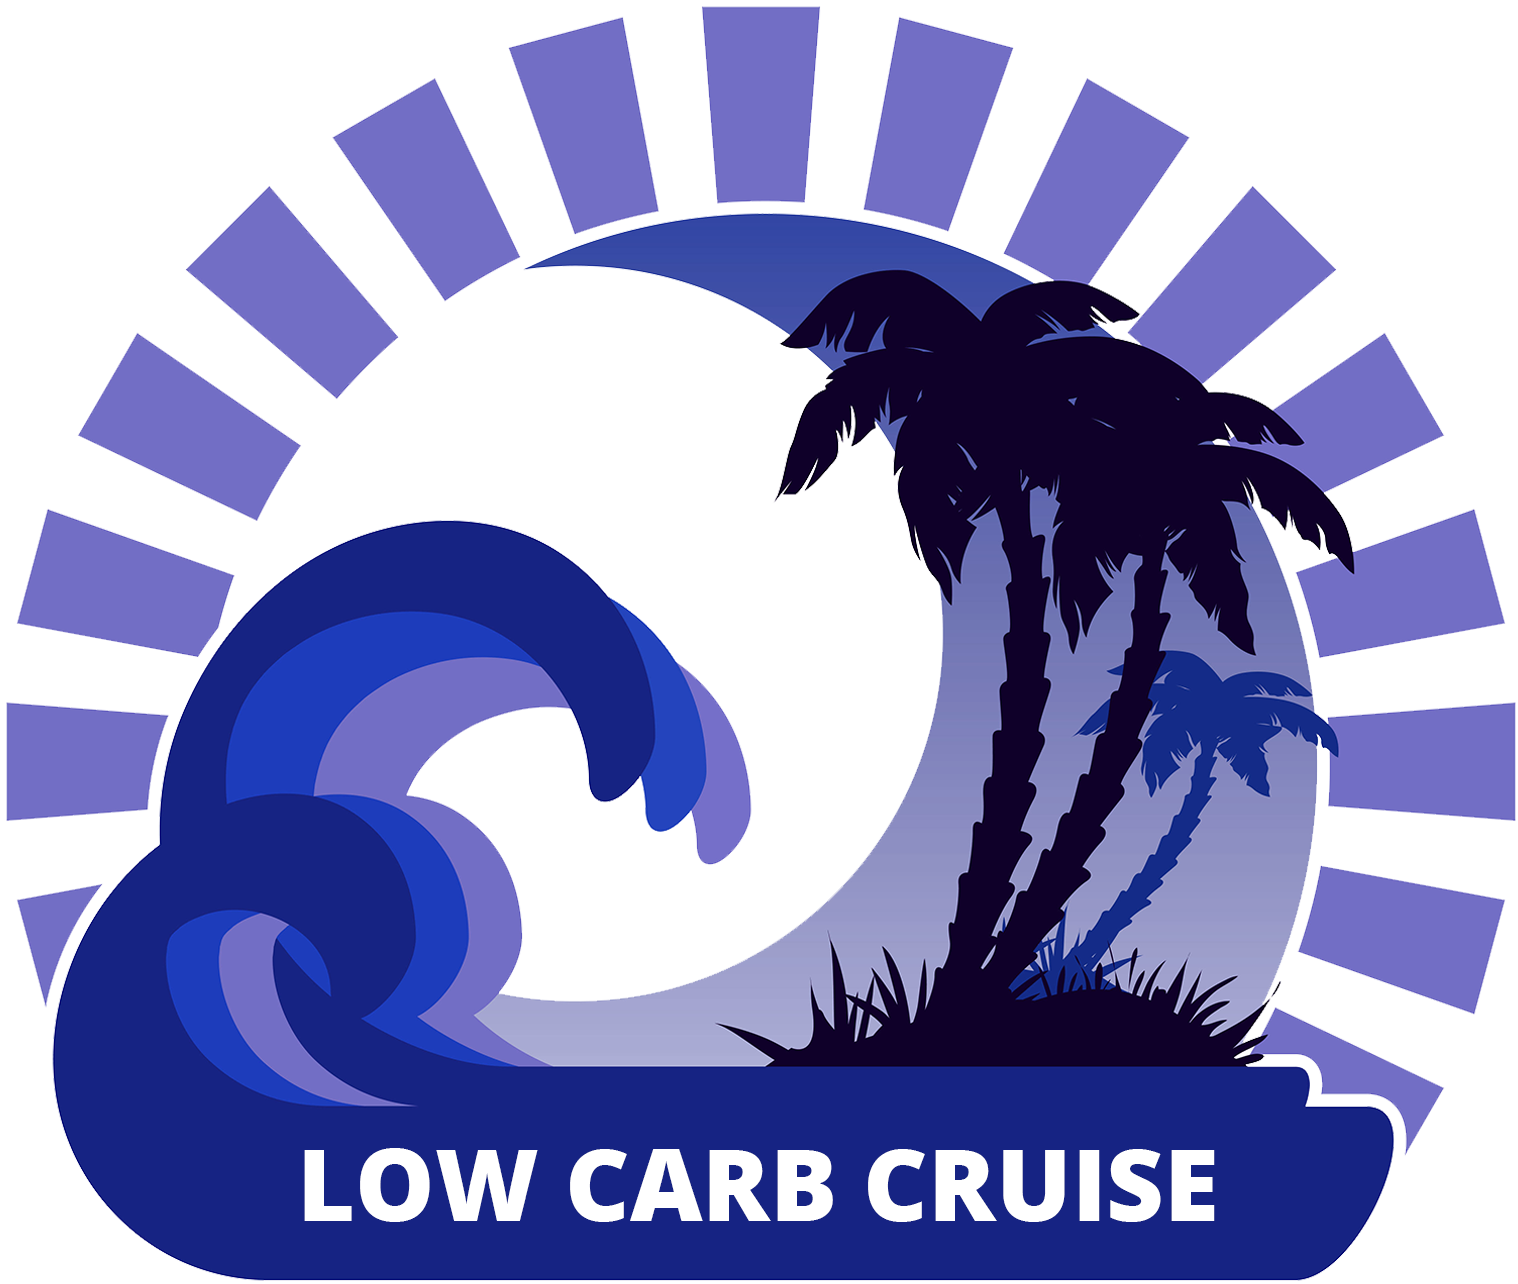 Taste clipart brain. Low carb cruise of